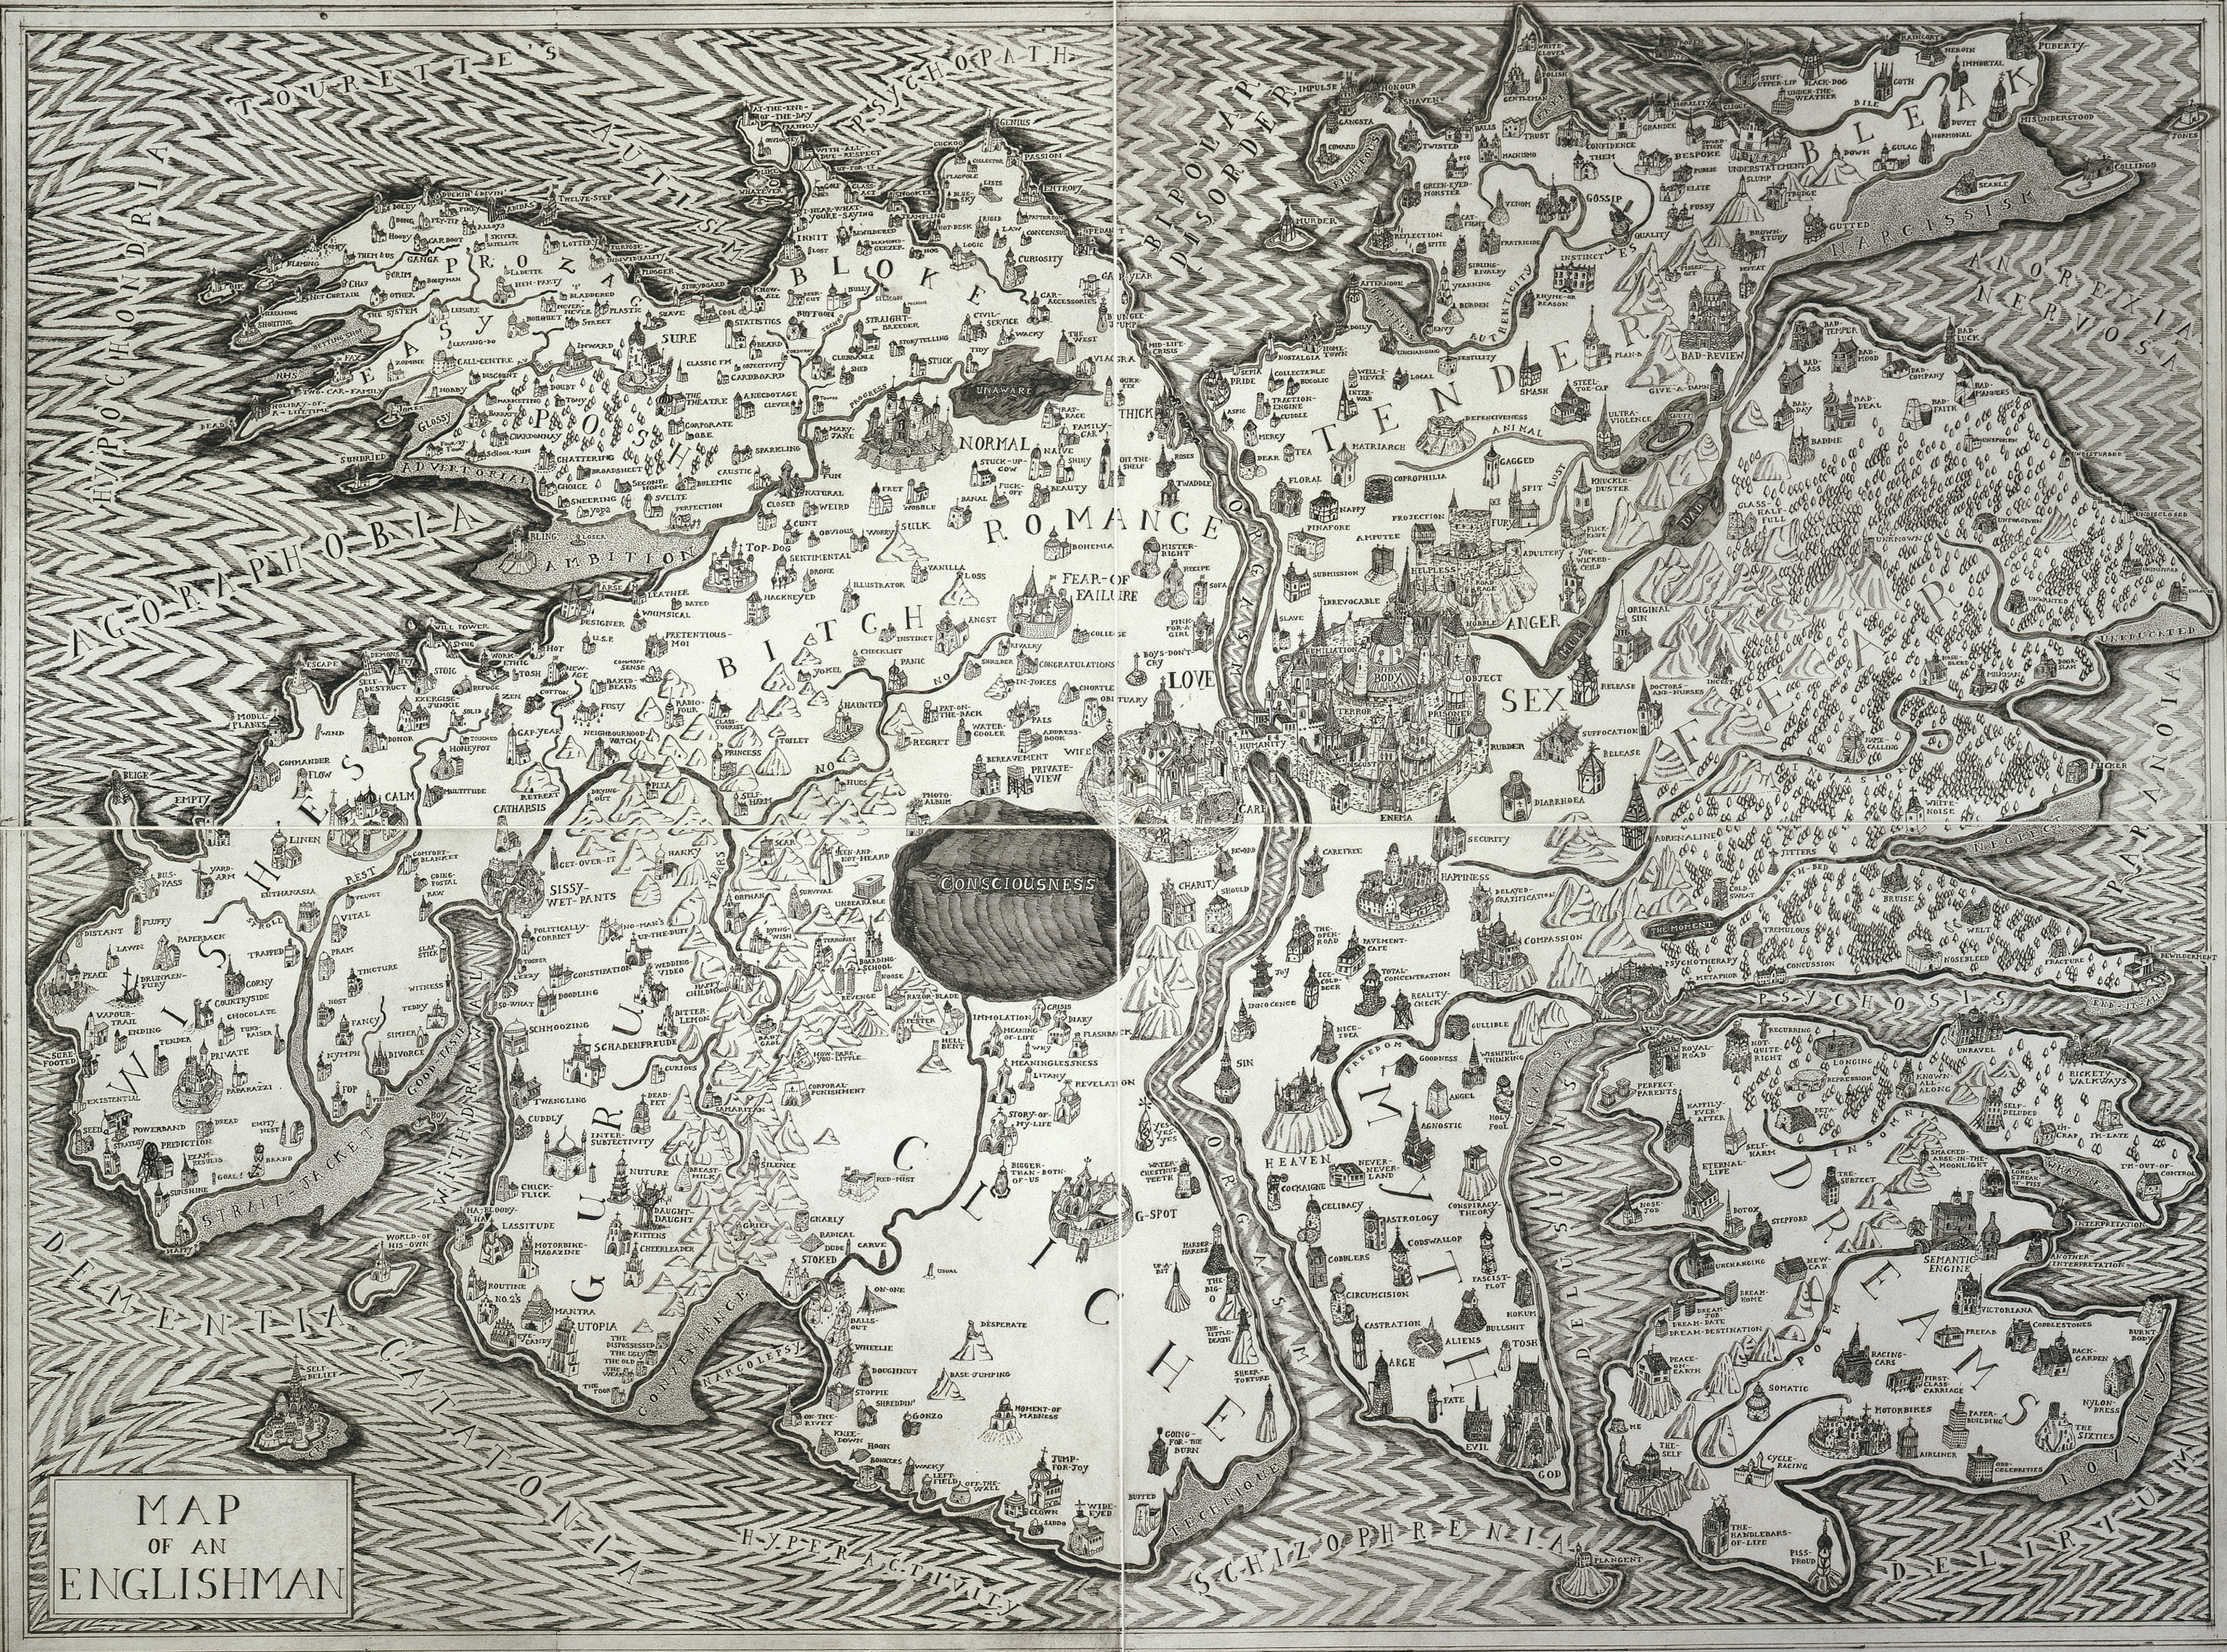 MAP OF AN ENGLISHMAN, ETCHING FROM FOUR PLATES, 112 X 150 CM, 2004